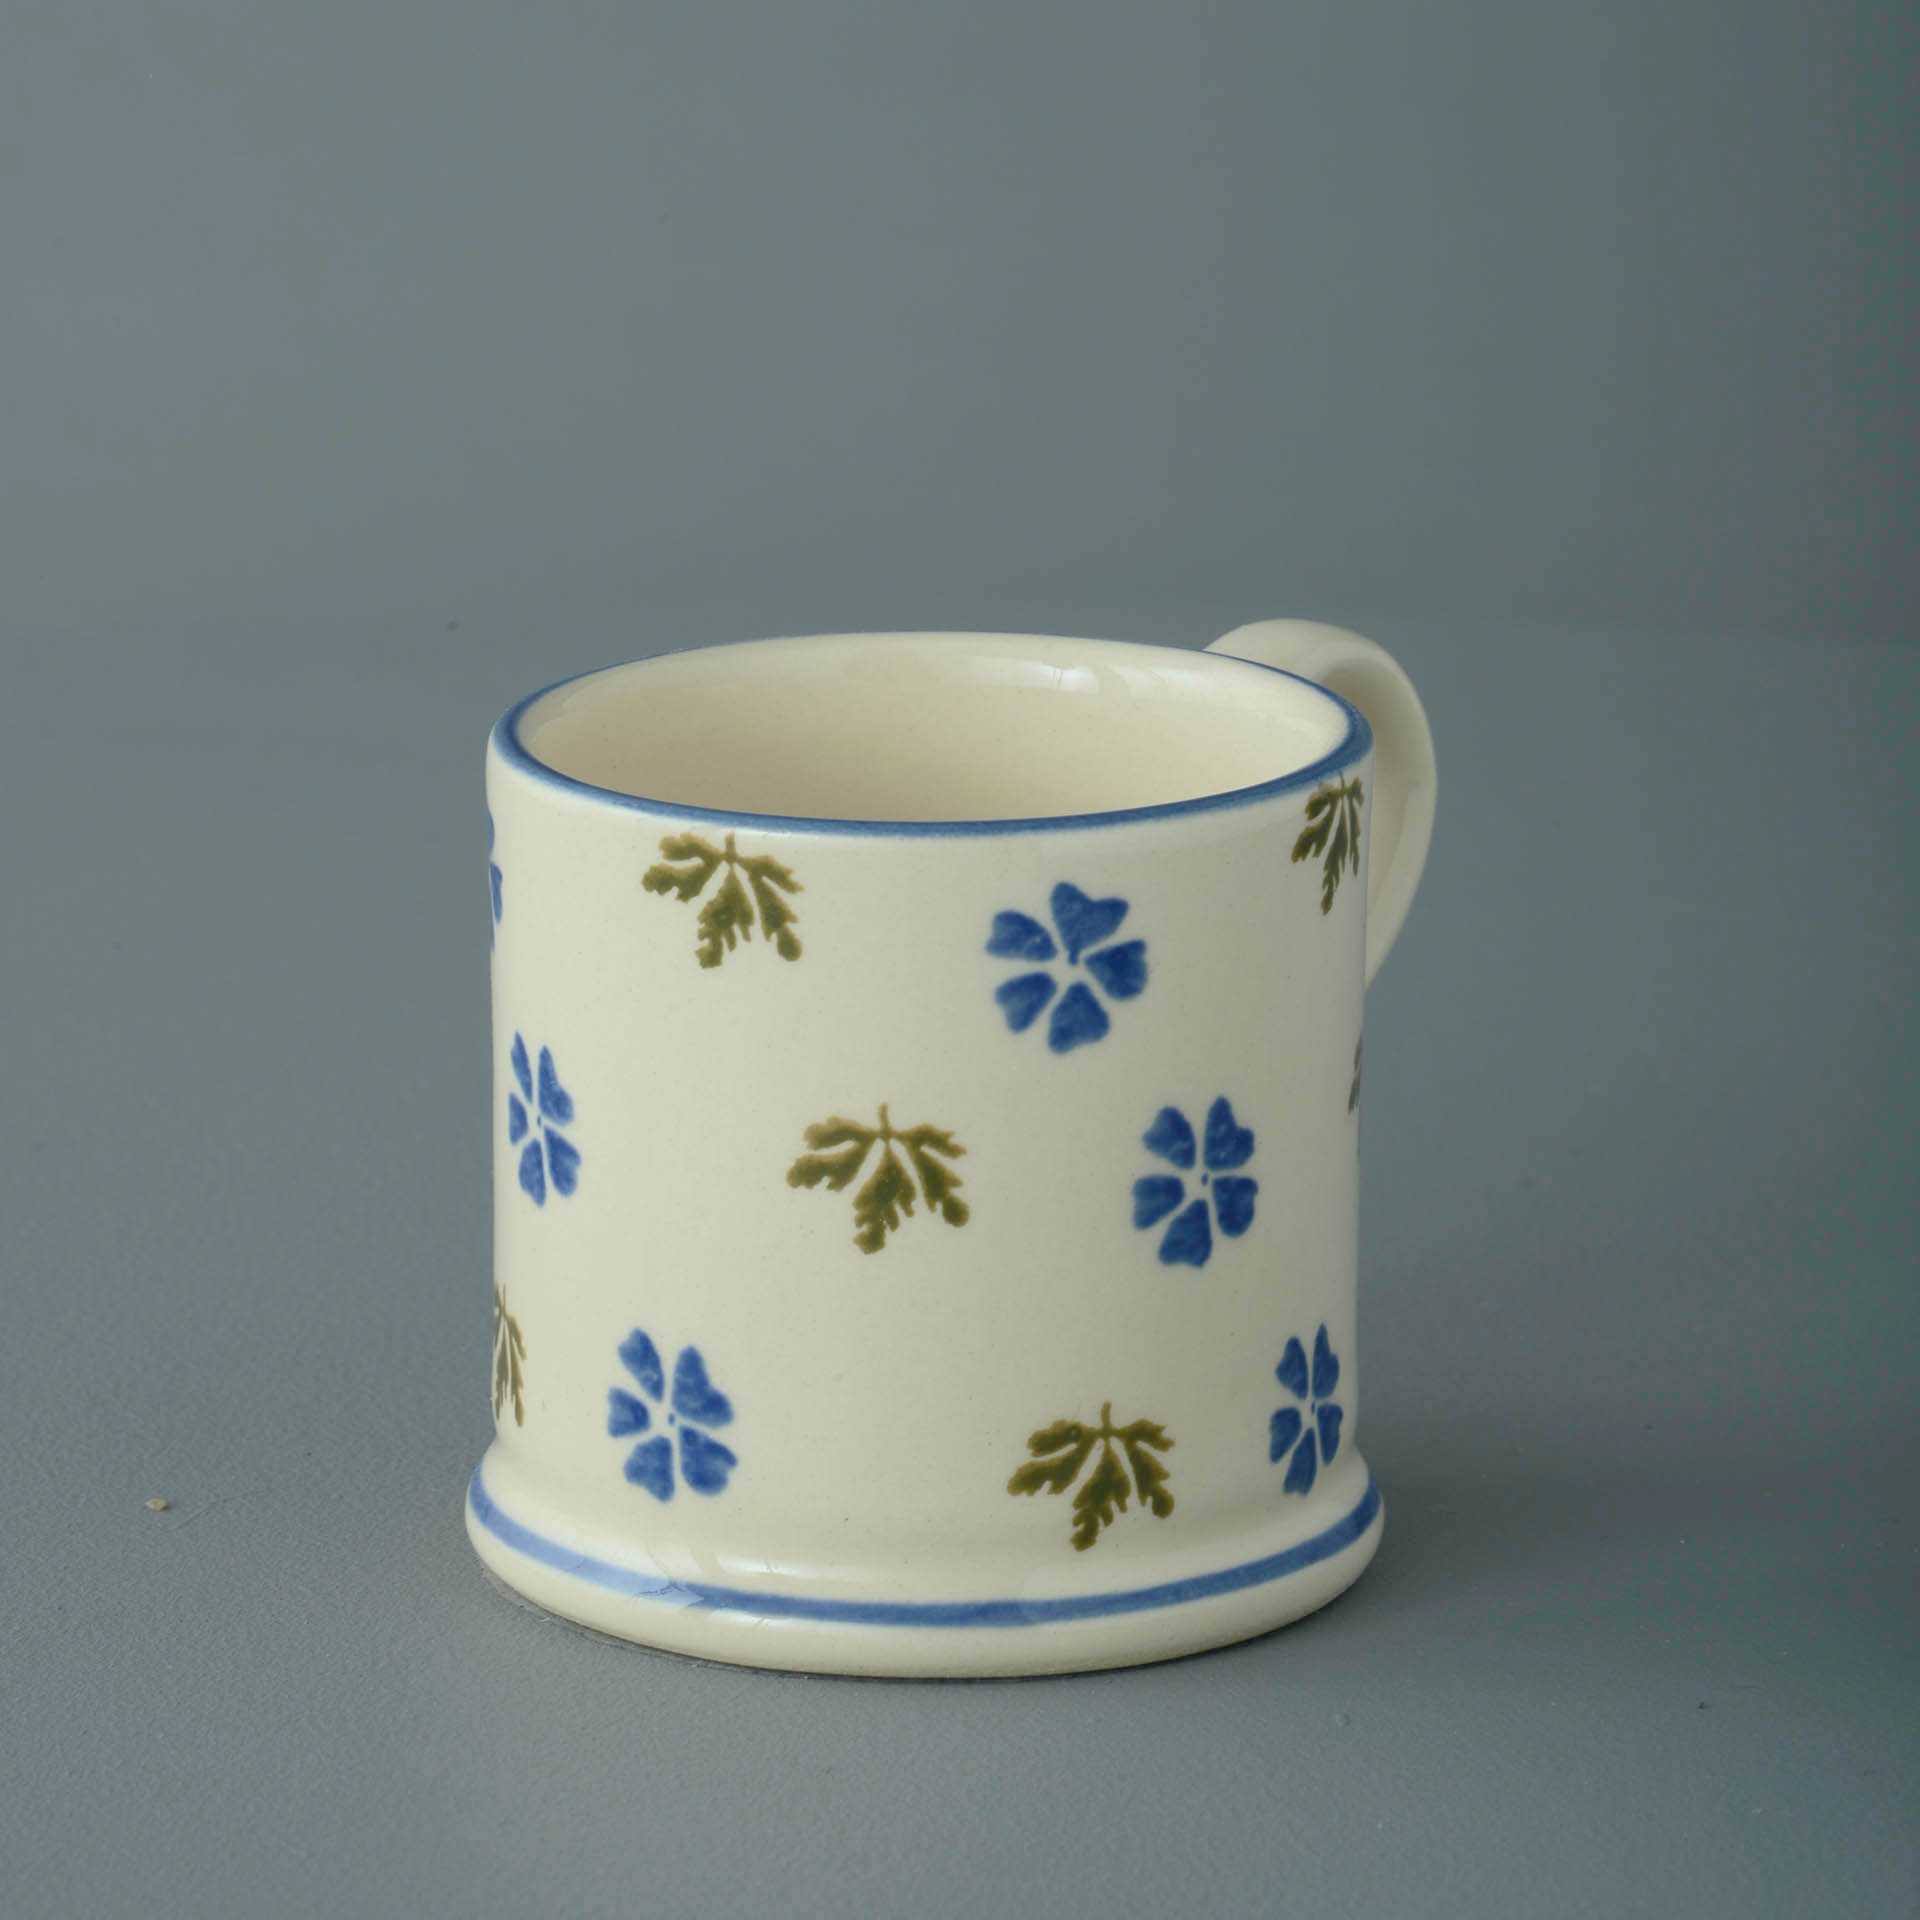 Geranium 150ml Small Mug 7 x 7.3cm